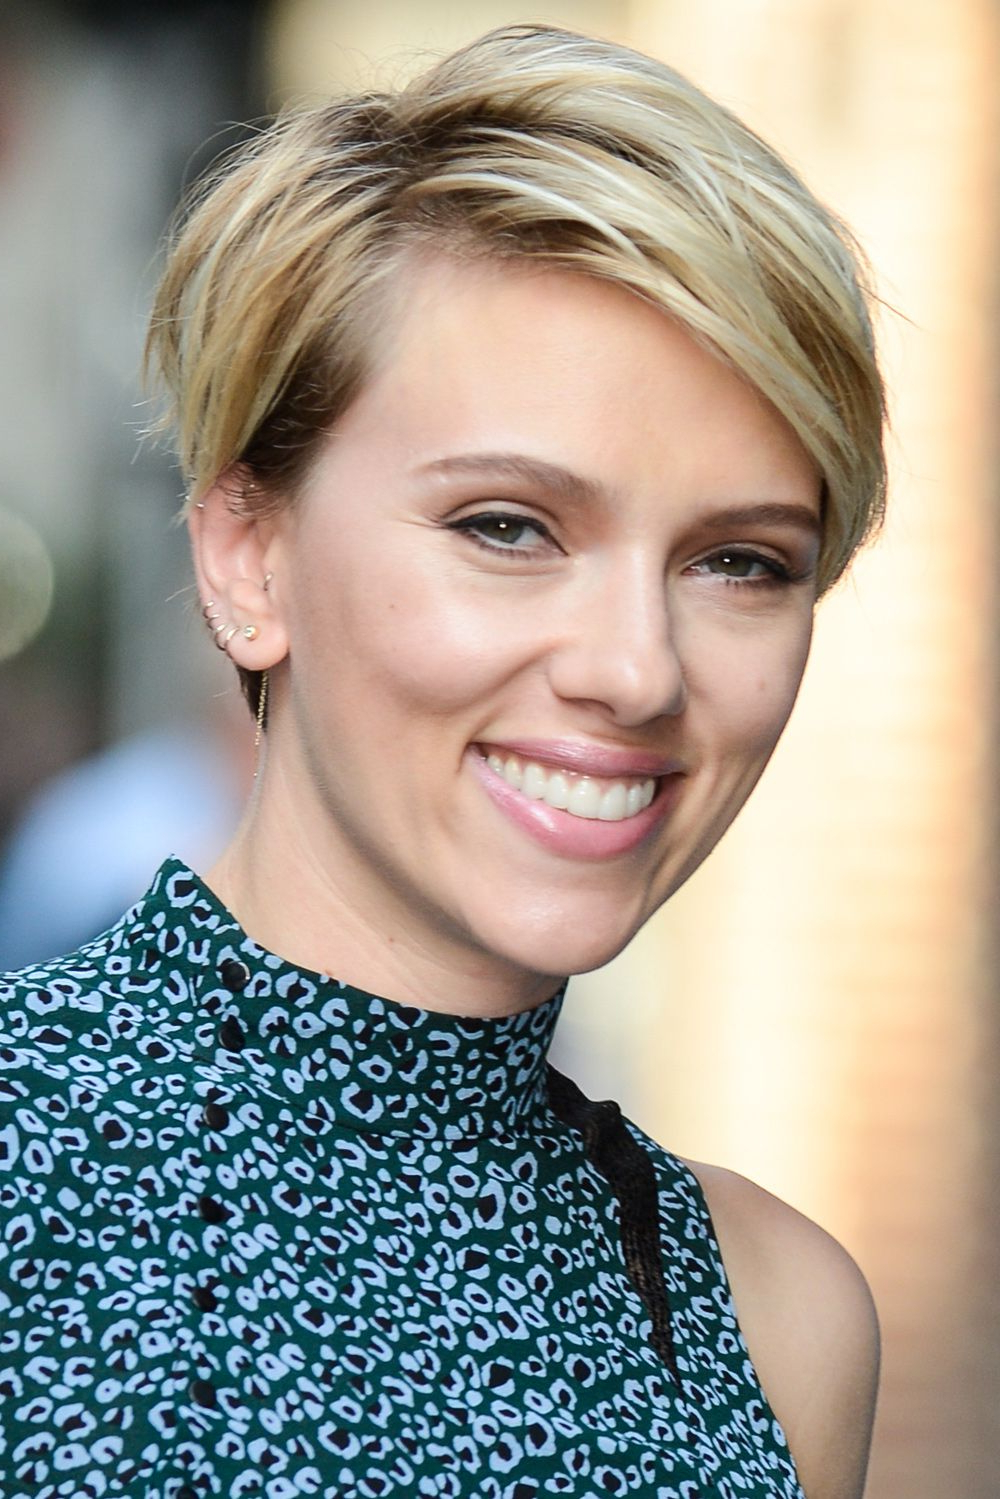 6 Super Popular Short Haircuts You Need To Try In 2018 In 2018 With Regard To Scarlett Johansson Short Haircuts (Gallery 6 of 25)